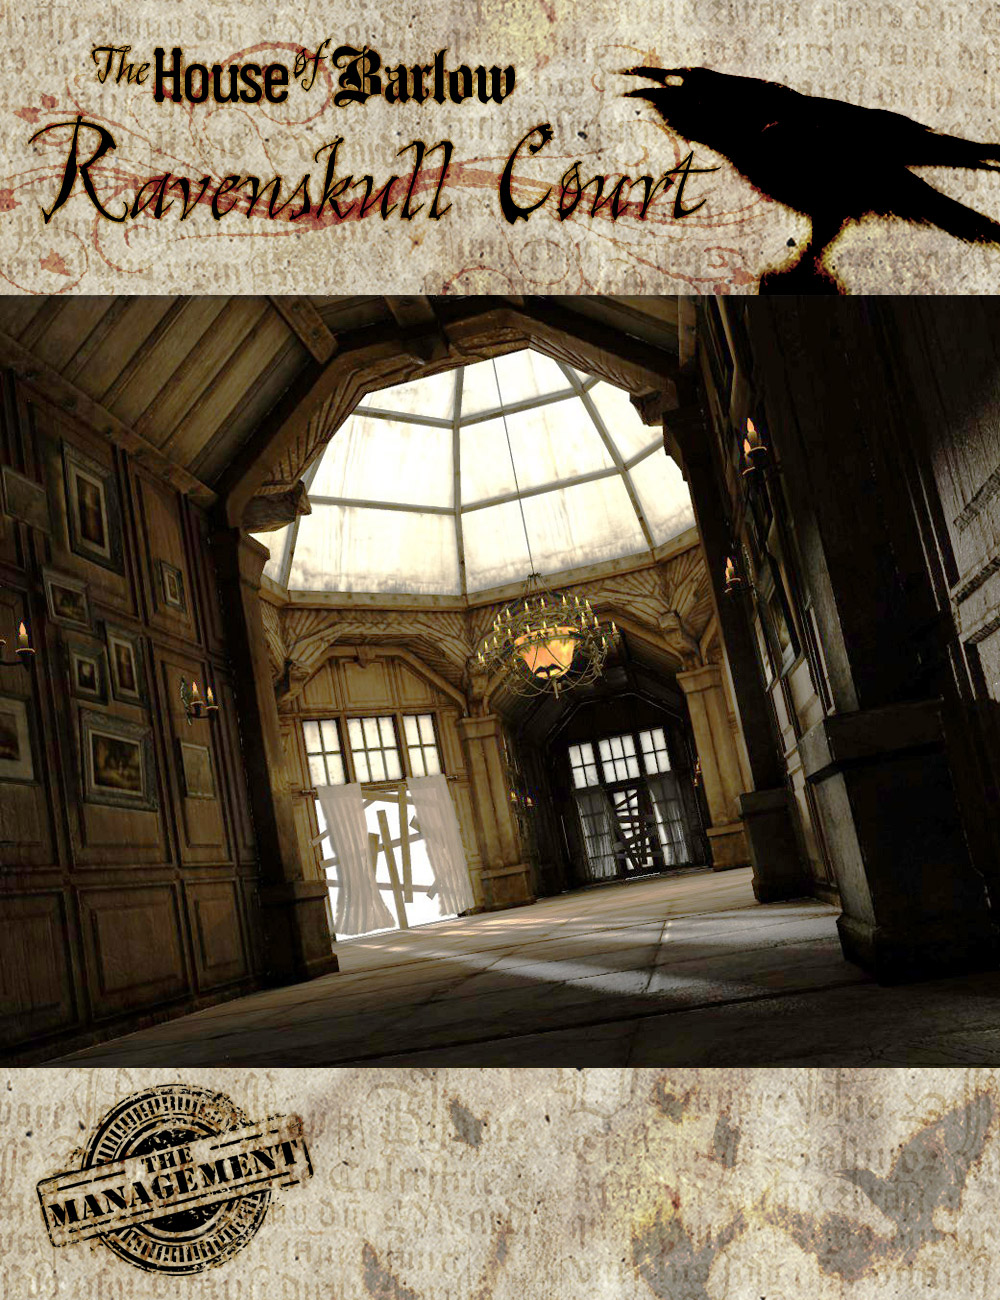 The Barlow House Ravenskull Court by: The Management, 3D Models by Daz 3D